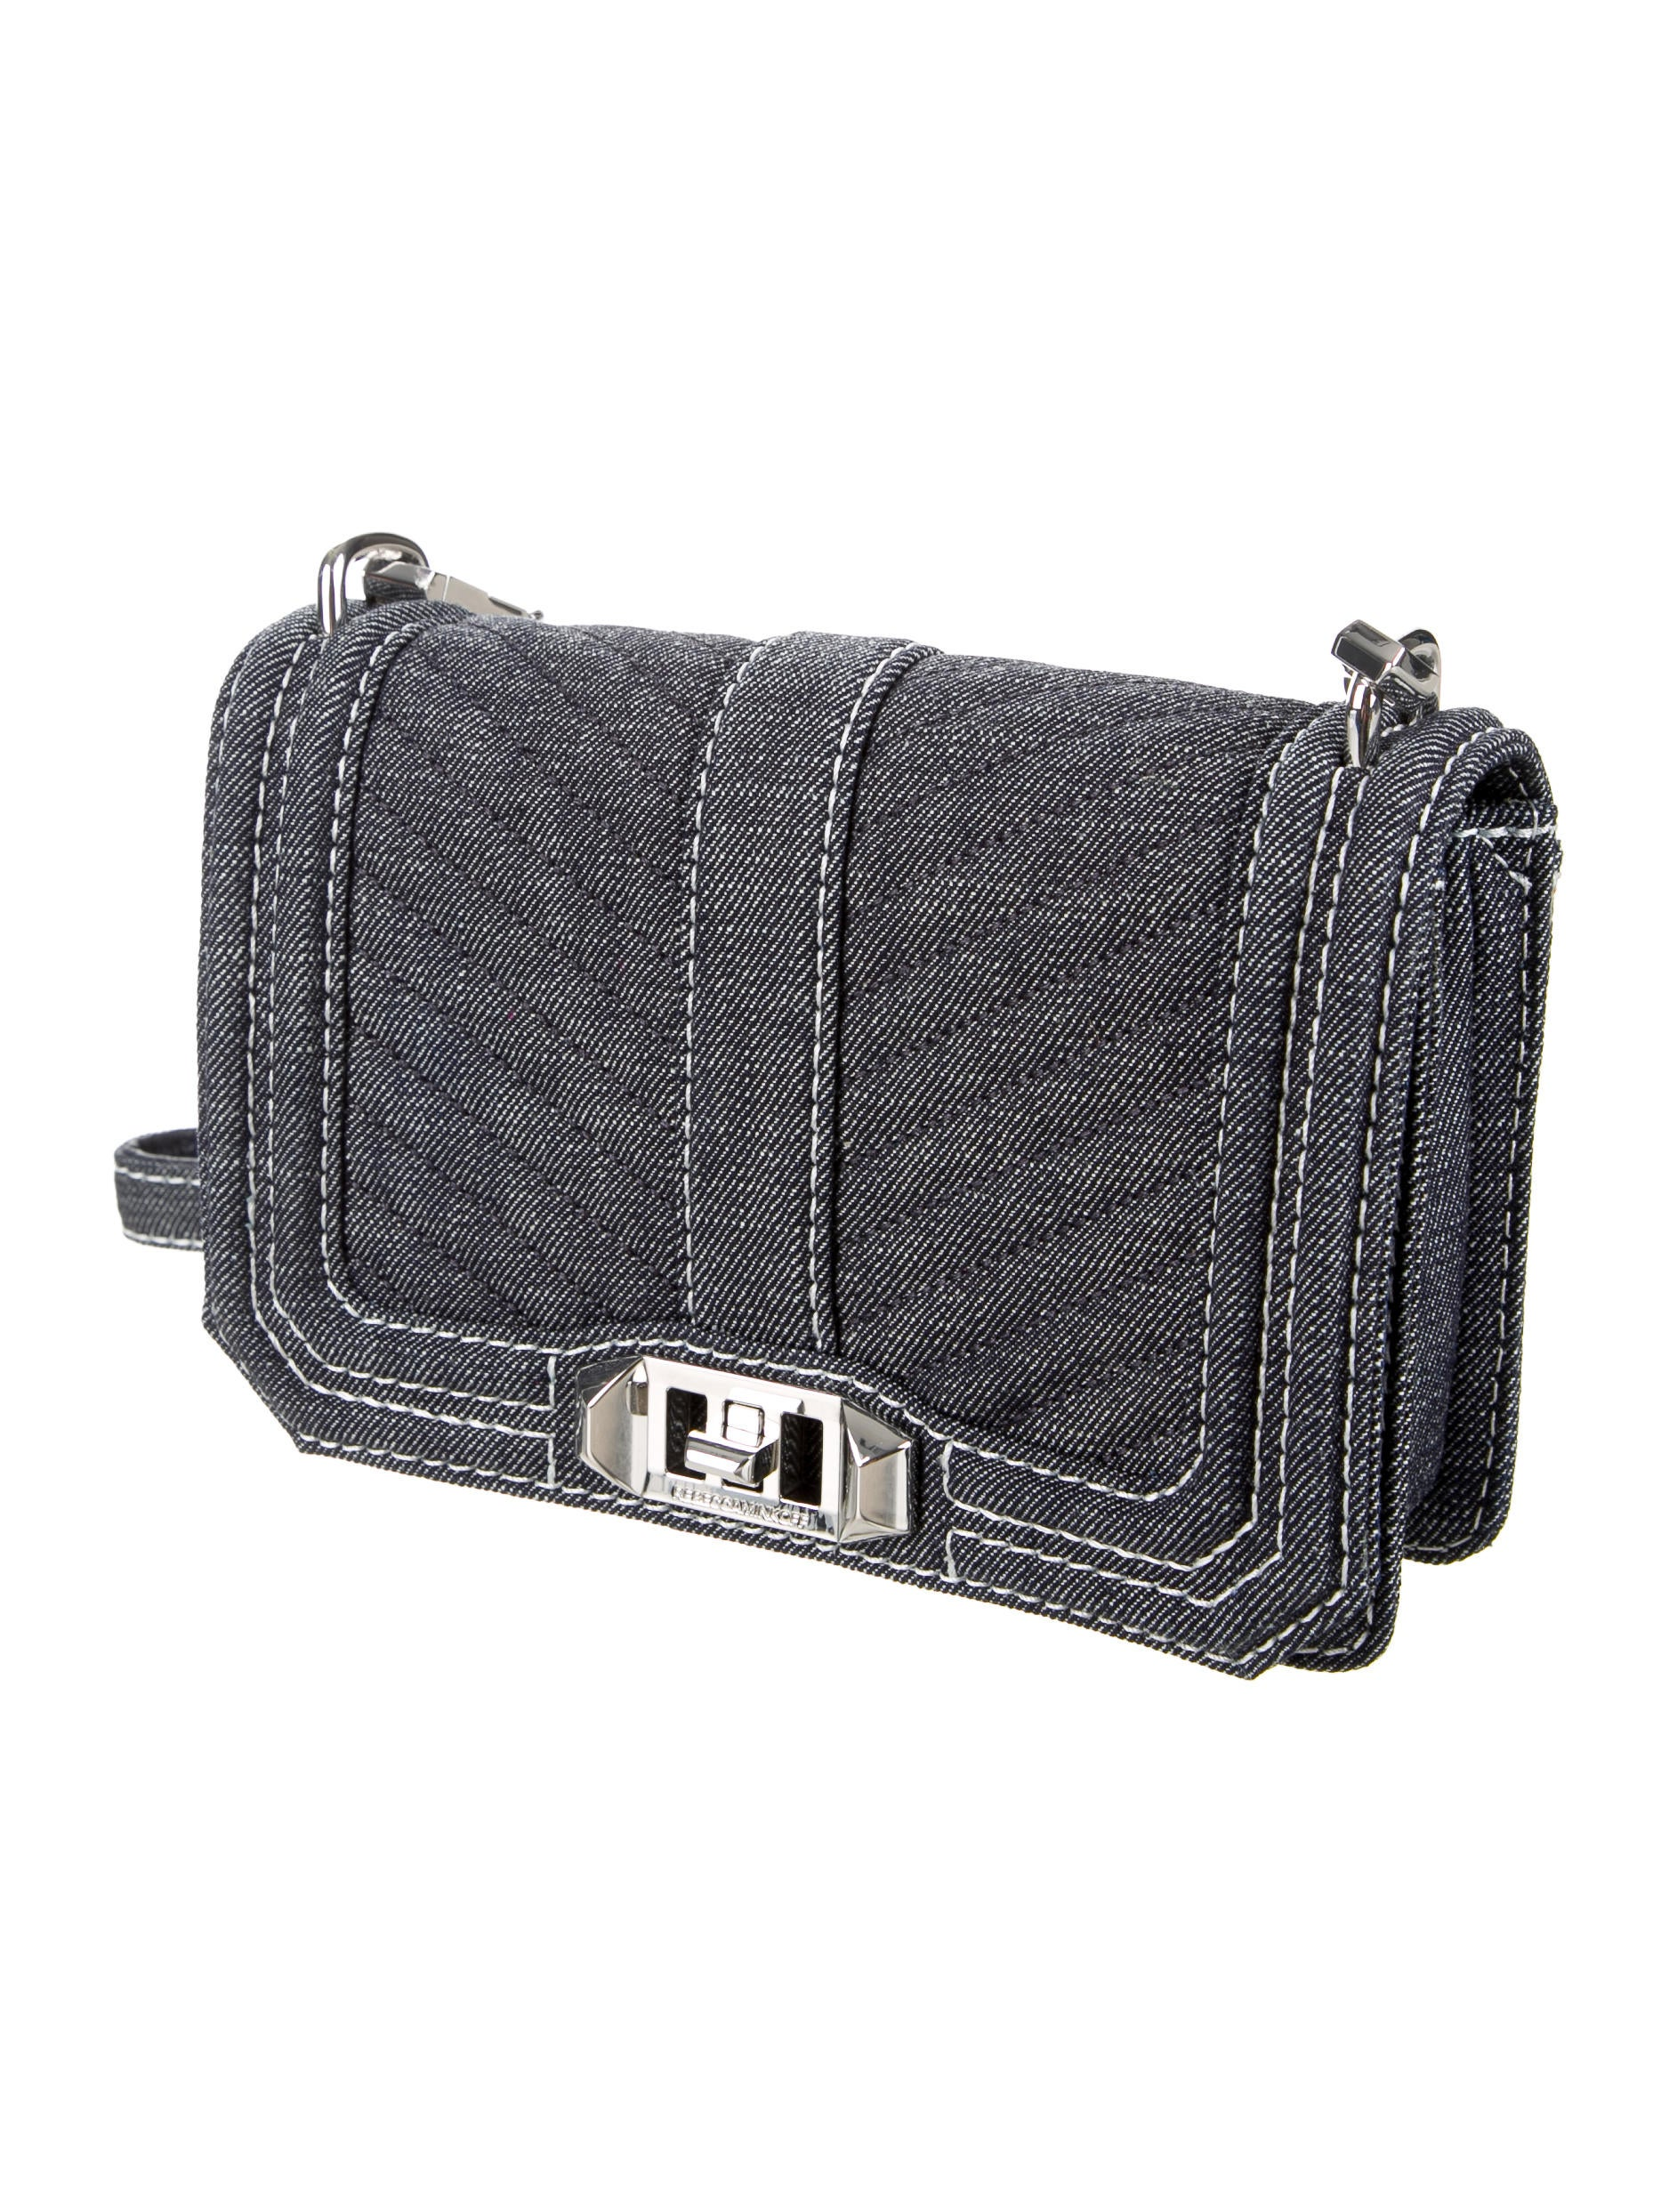 Rebecca Minkoff Denim Love Crossbody Bag Handbags